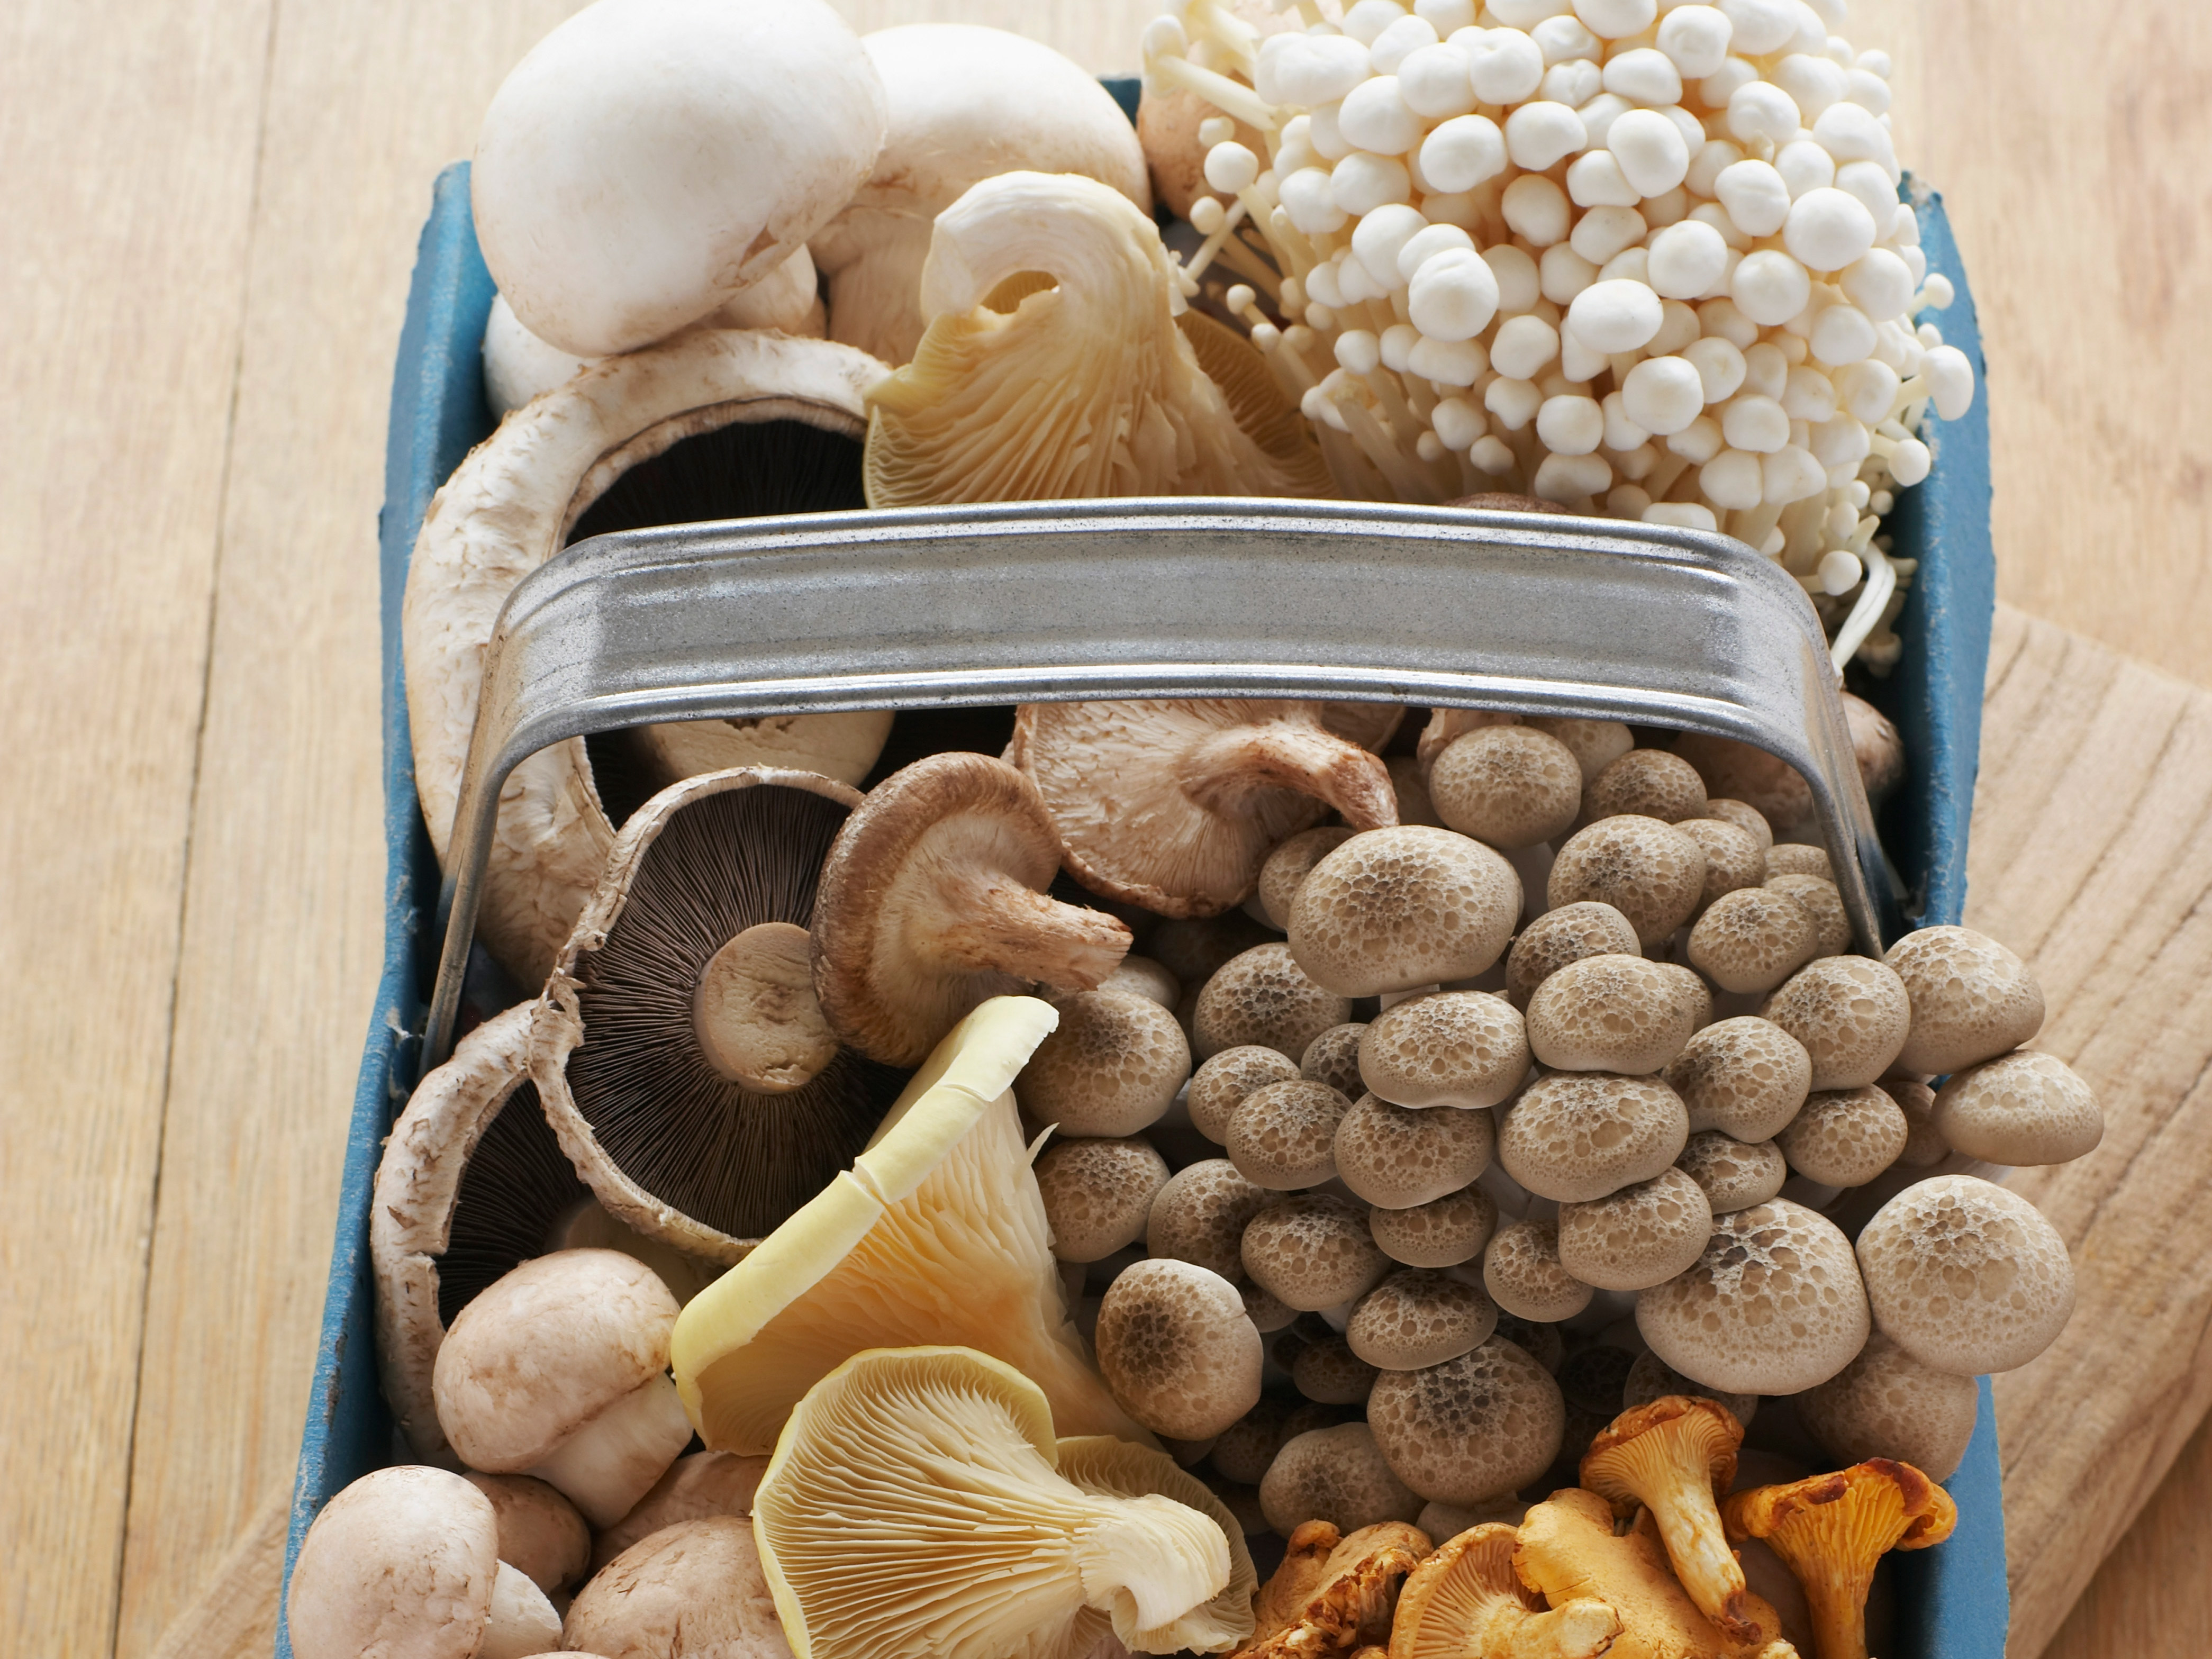 The modest superfood: miraculous mushrooms